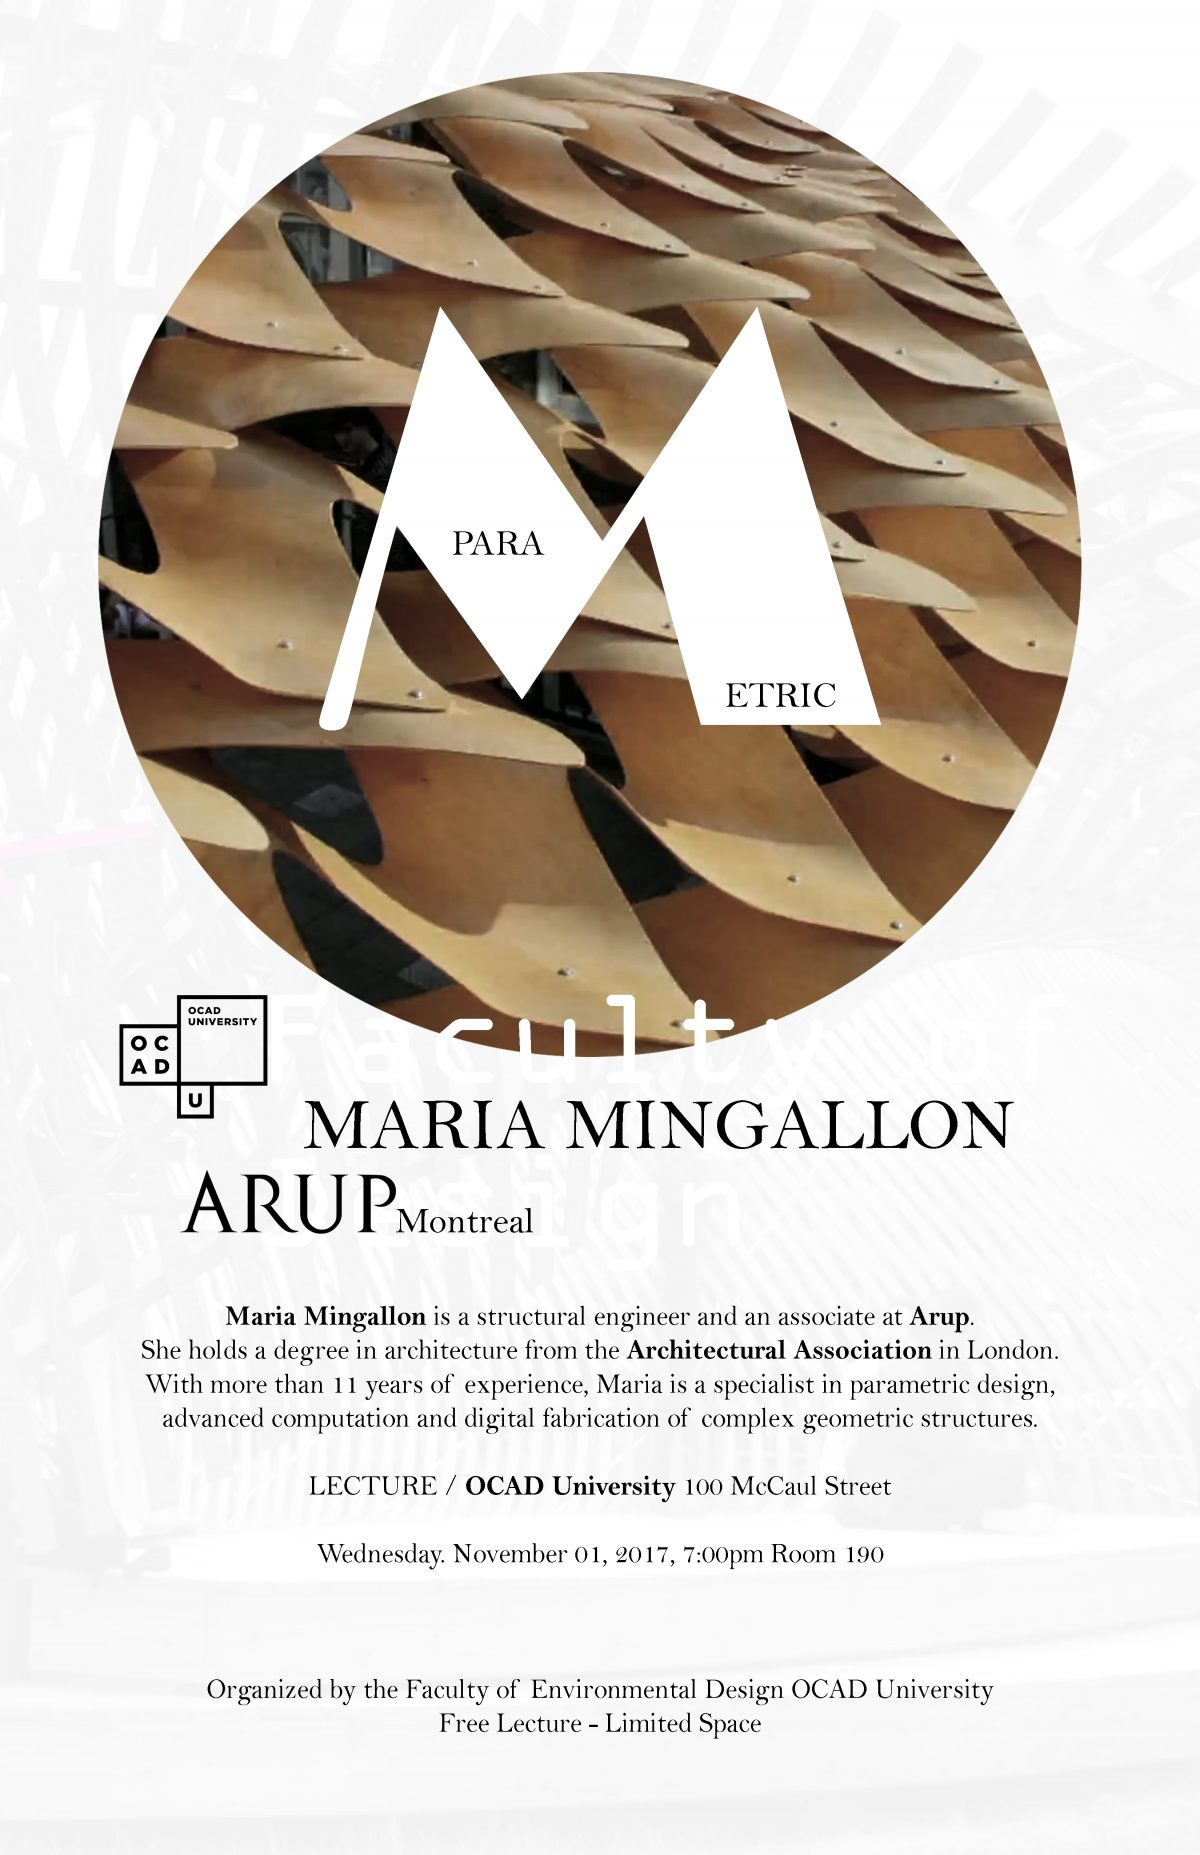 Parametric Design: Maria Mingallon at OCAD